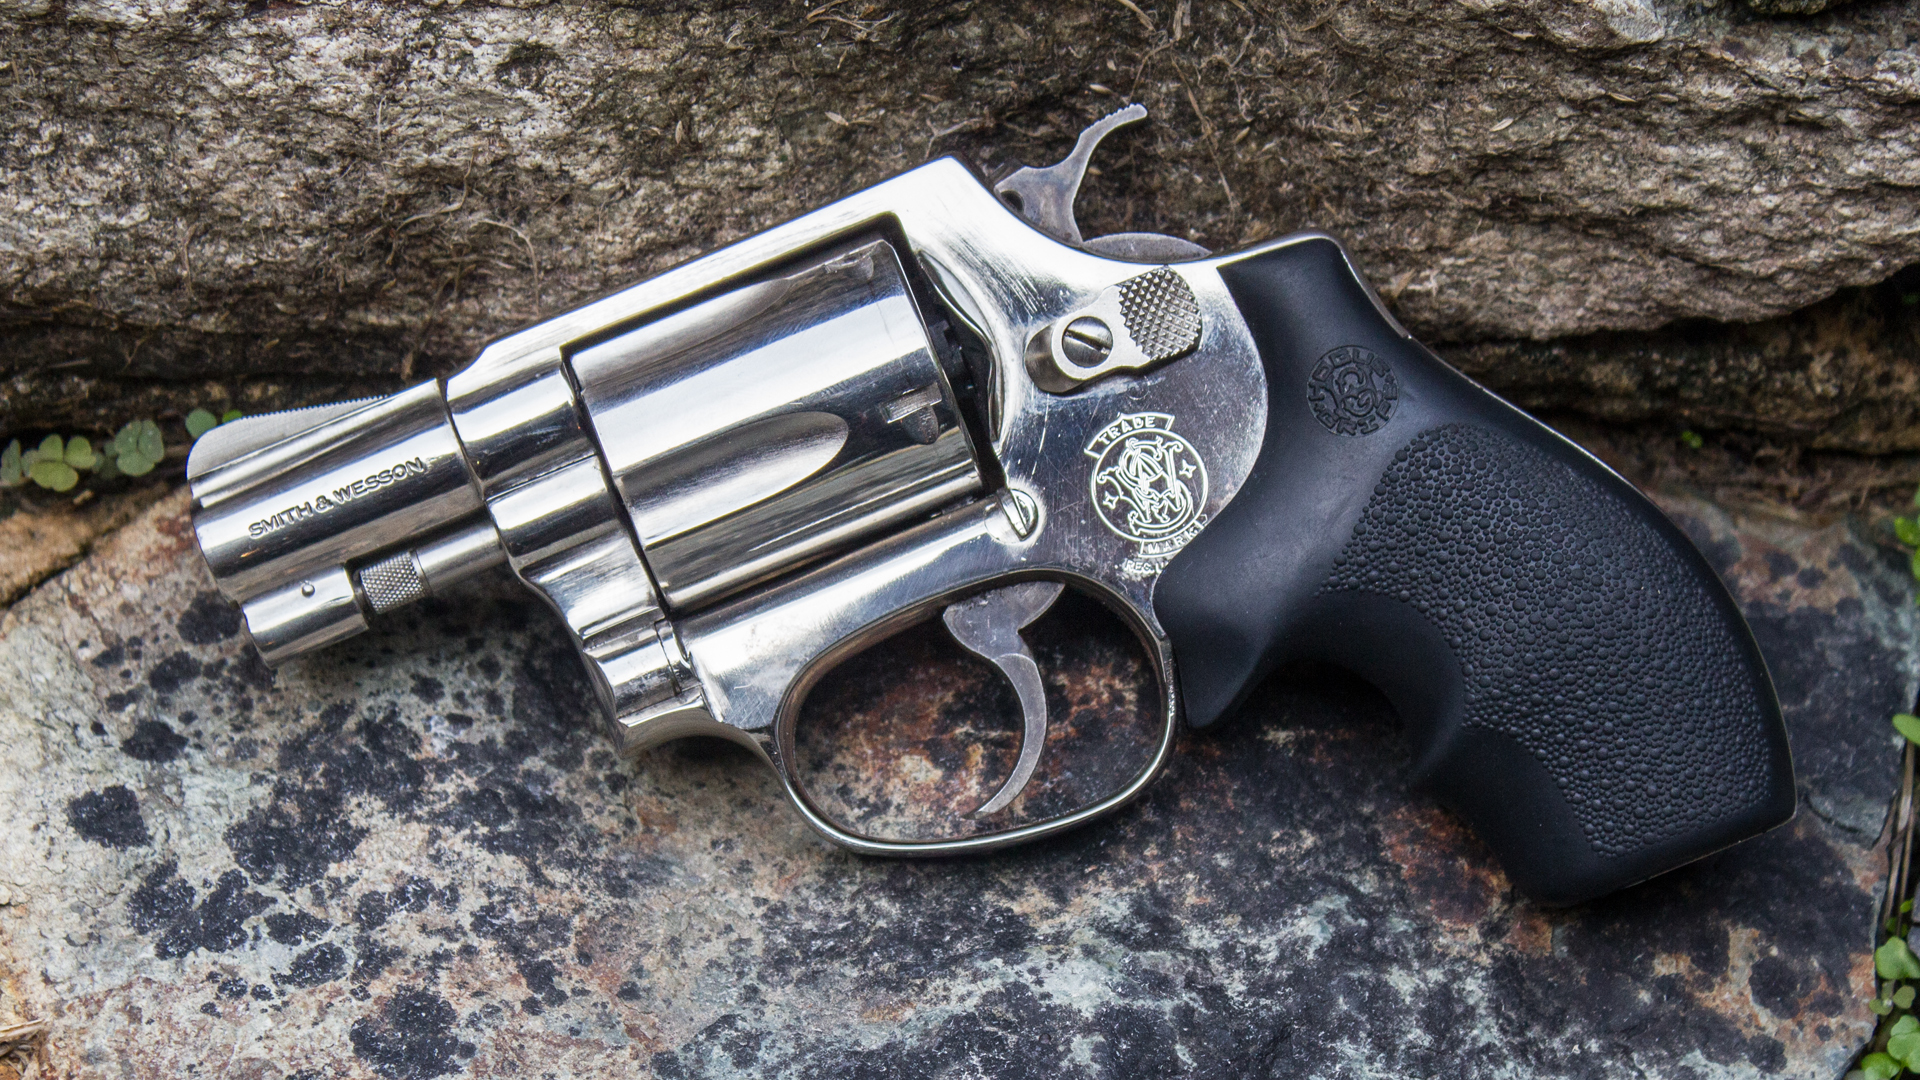 Smith And Wesson Internal Lock Is It A Deal Breaker